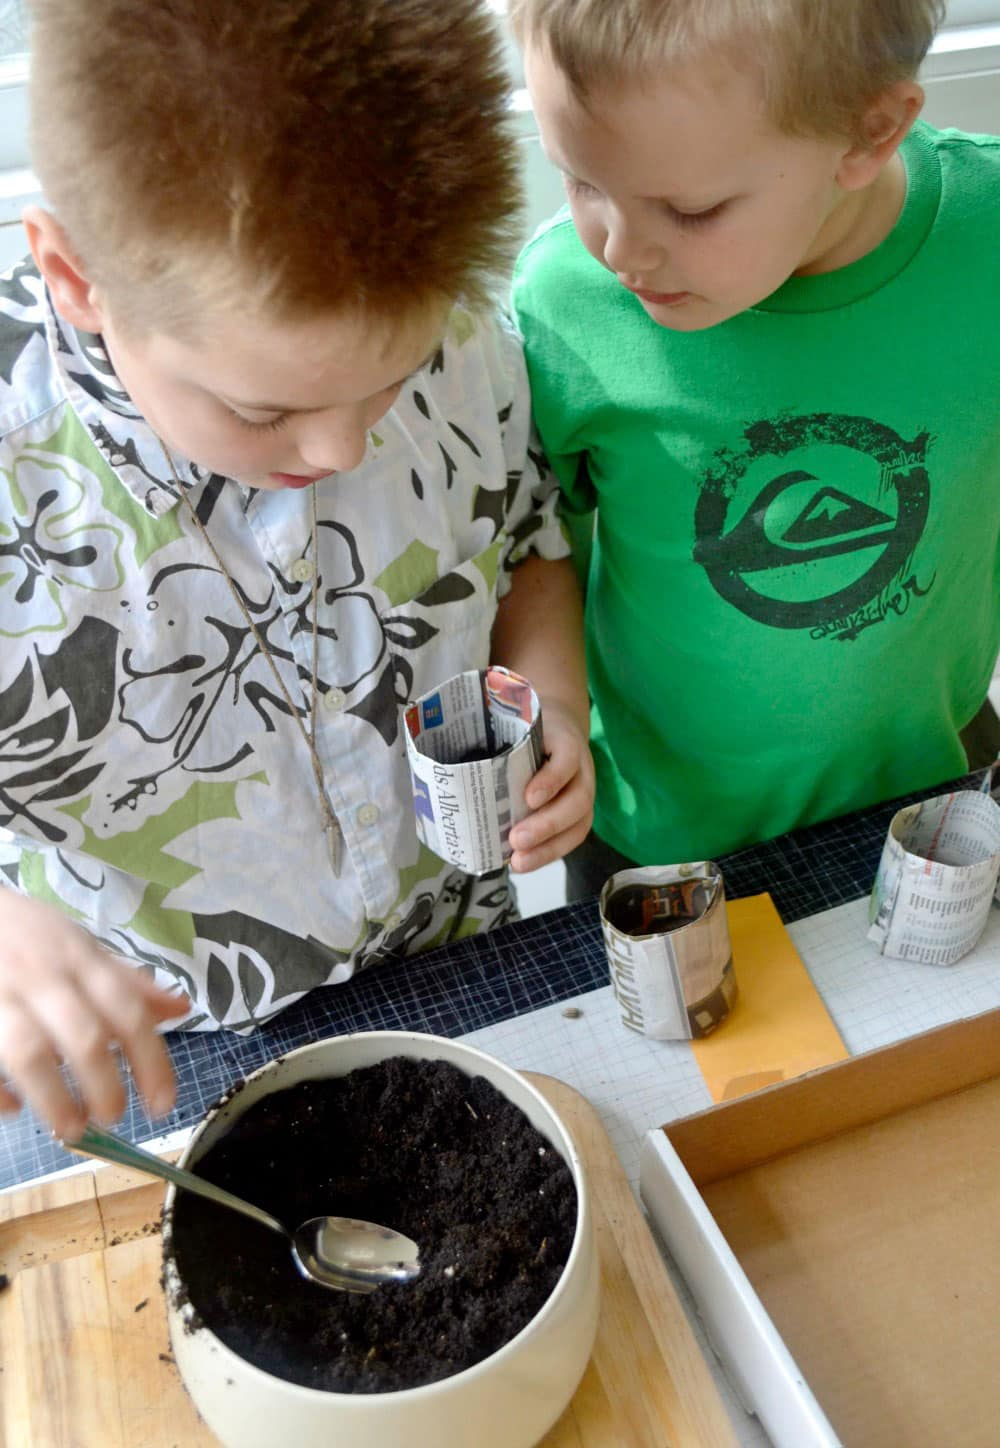 Two curious boys filling a newspaper cup with soil to prepare for seedlings.